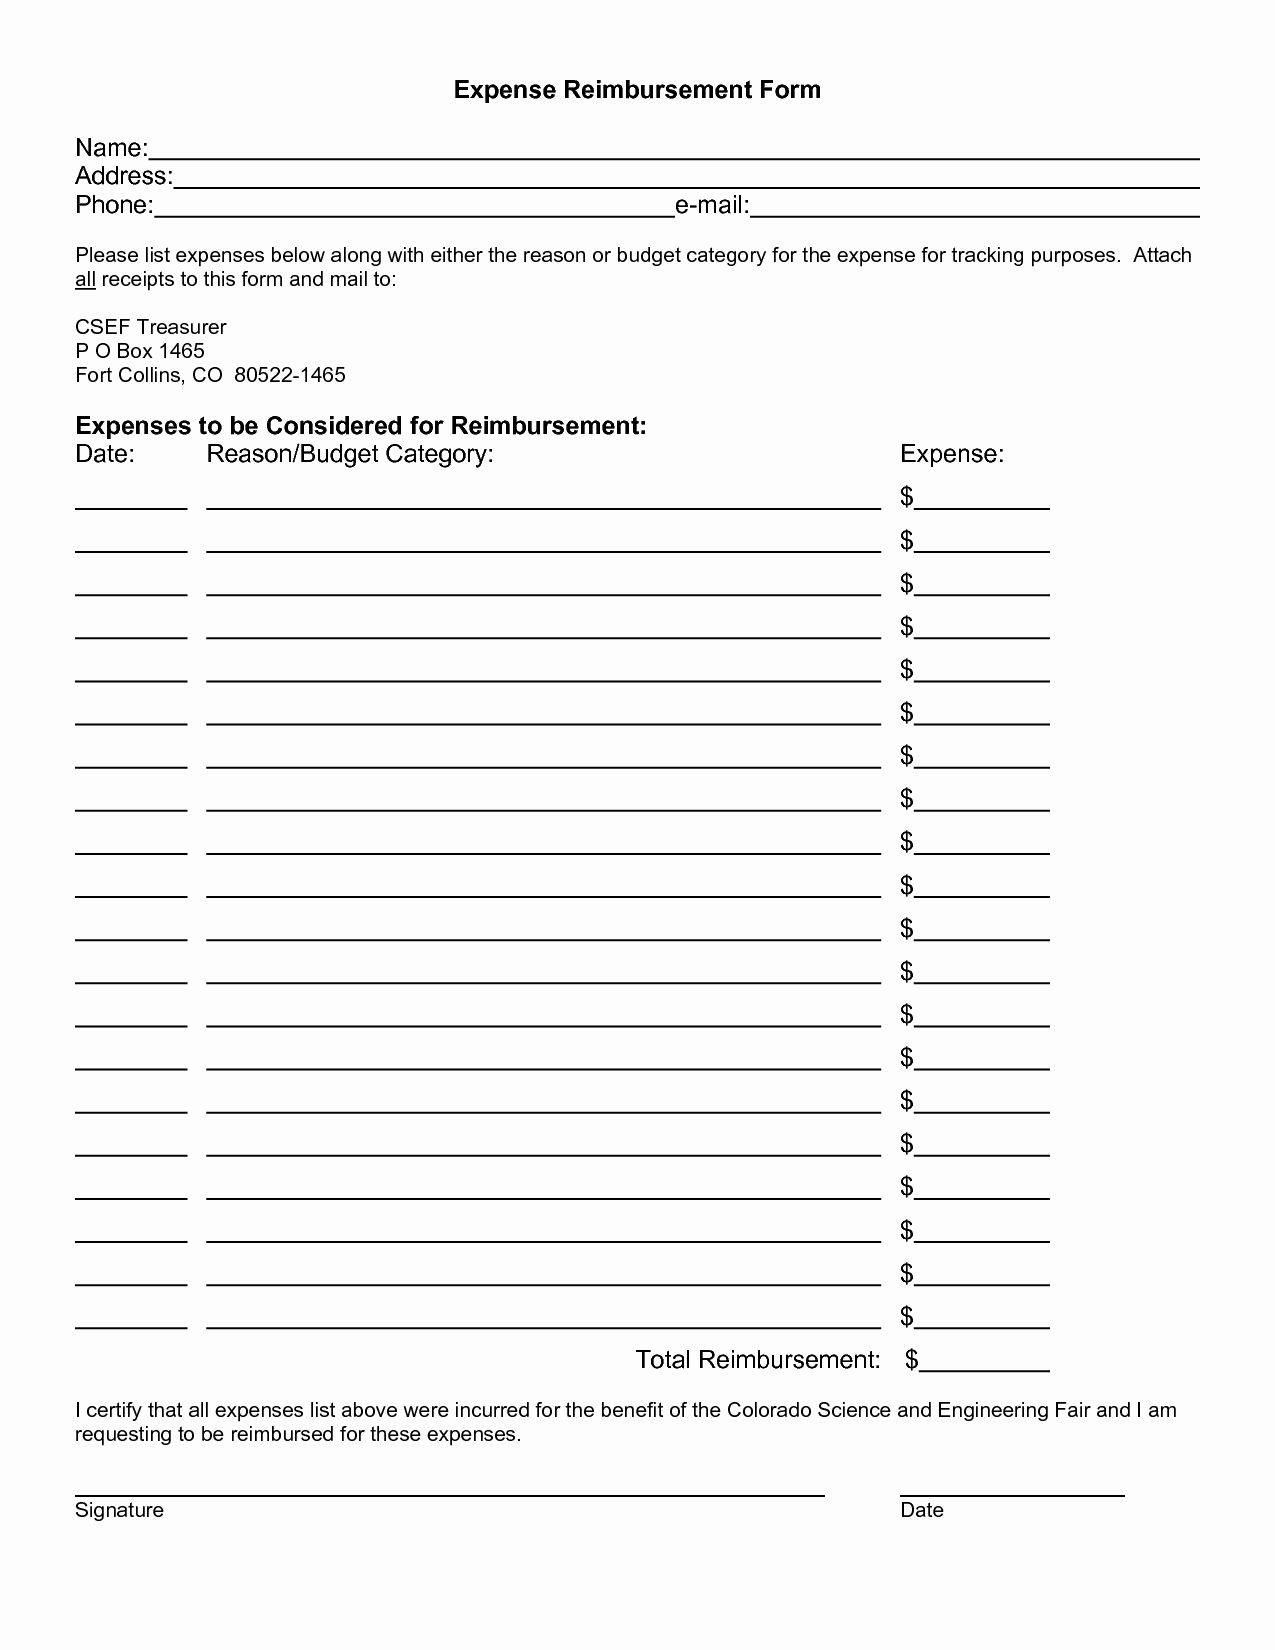 Expense Reimbursement Form Template Lovely Expense Reimbursement Template Portablegasgrillweber Templates Traveling By Yourself Poster Tutorial